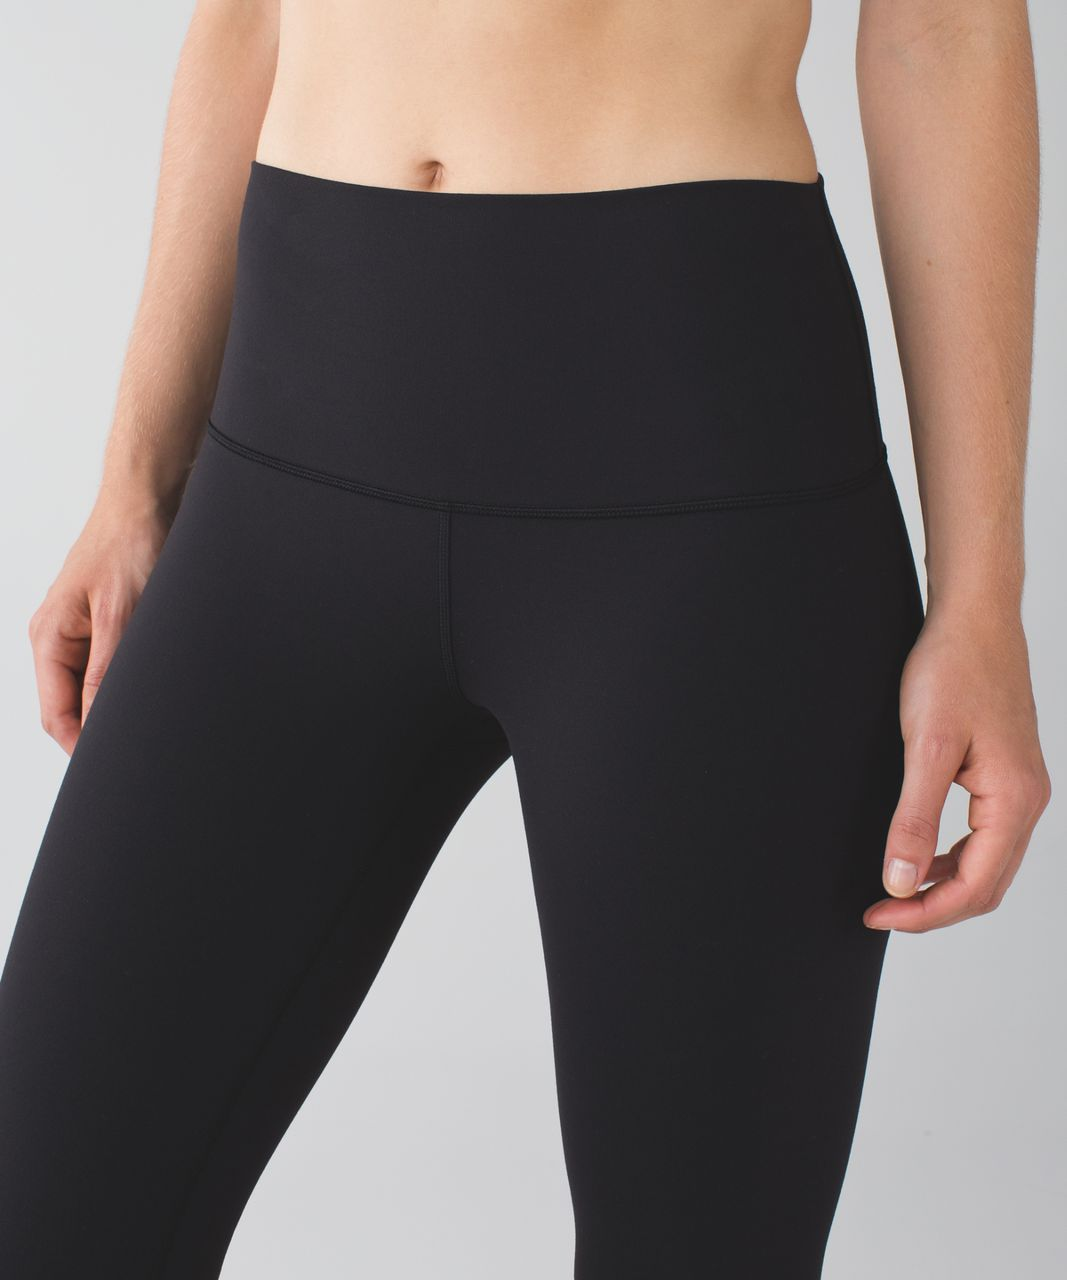 Lululemon Wunder Under Crop II *Full-On Luon (Roll Down) - Black